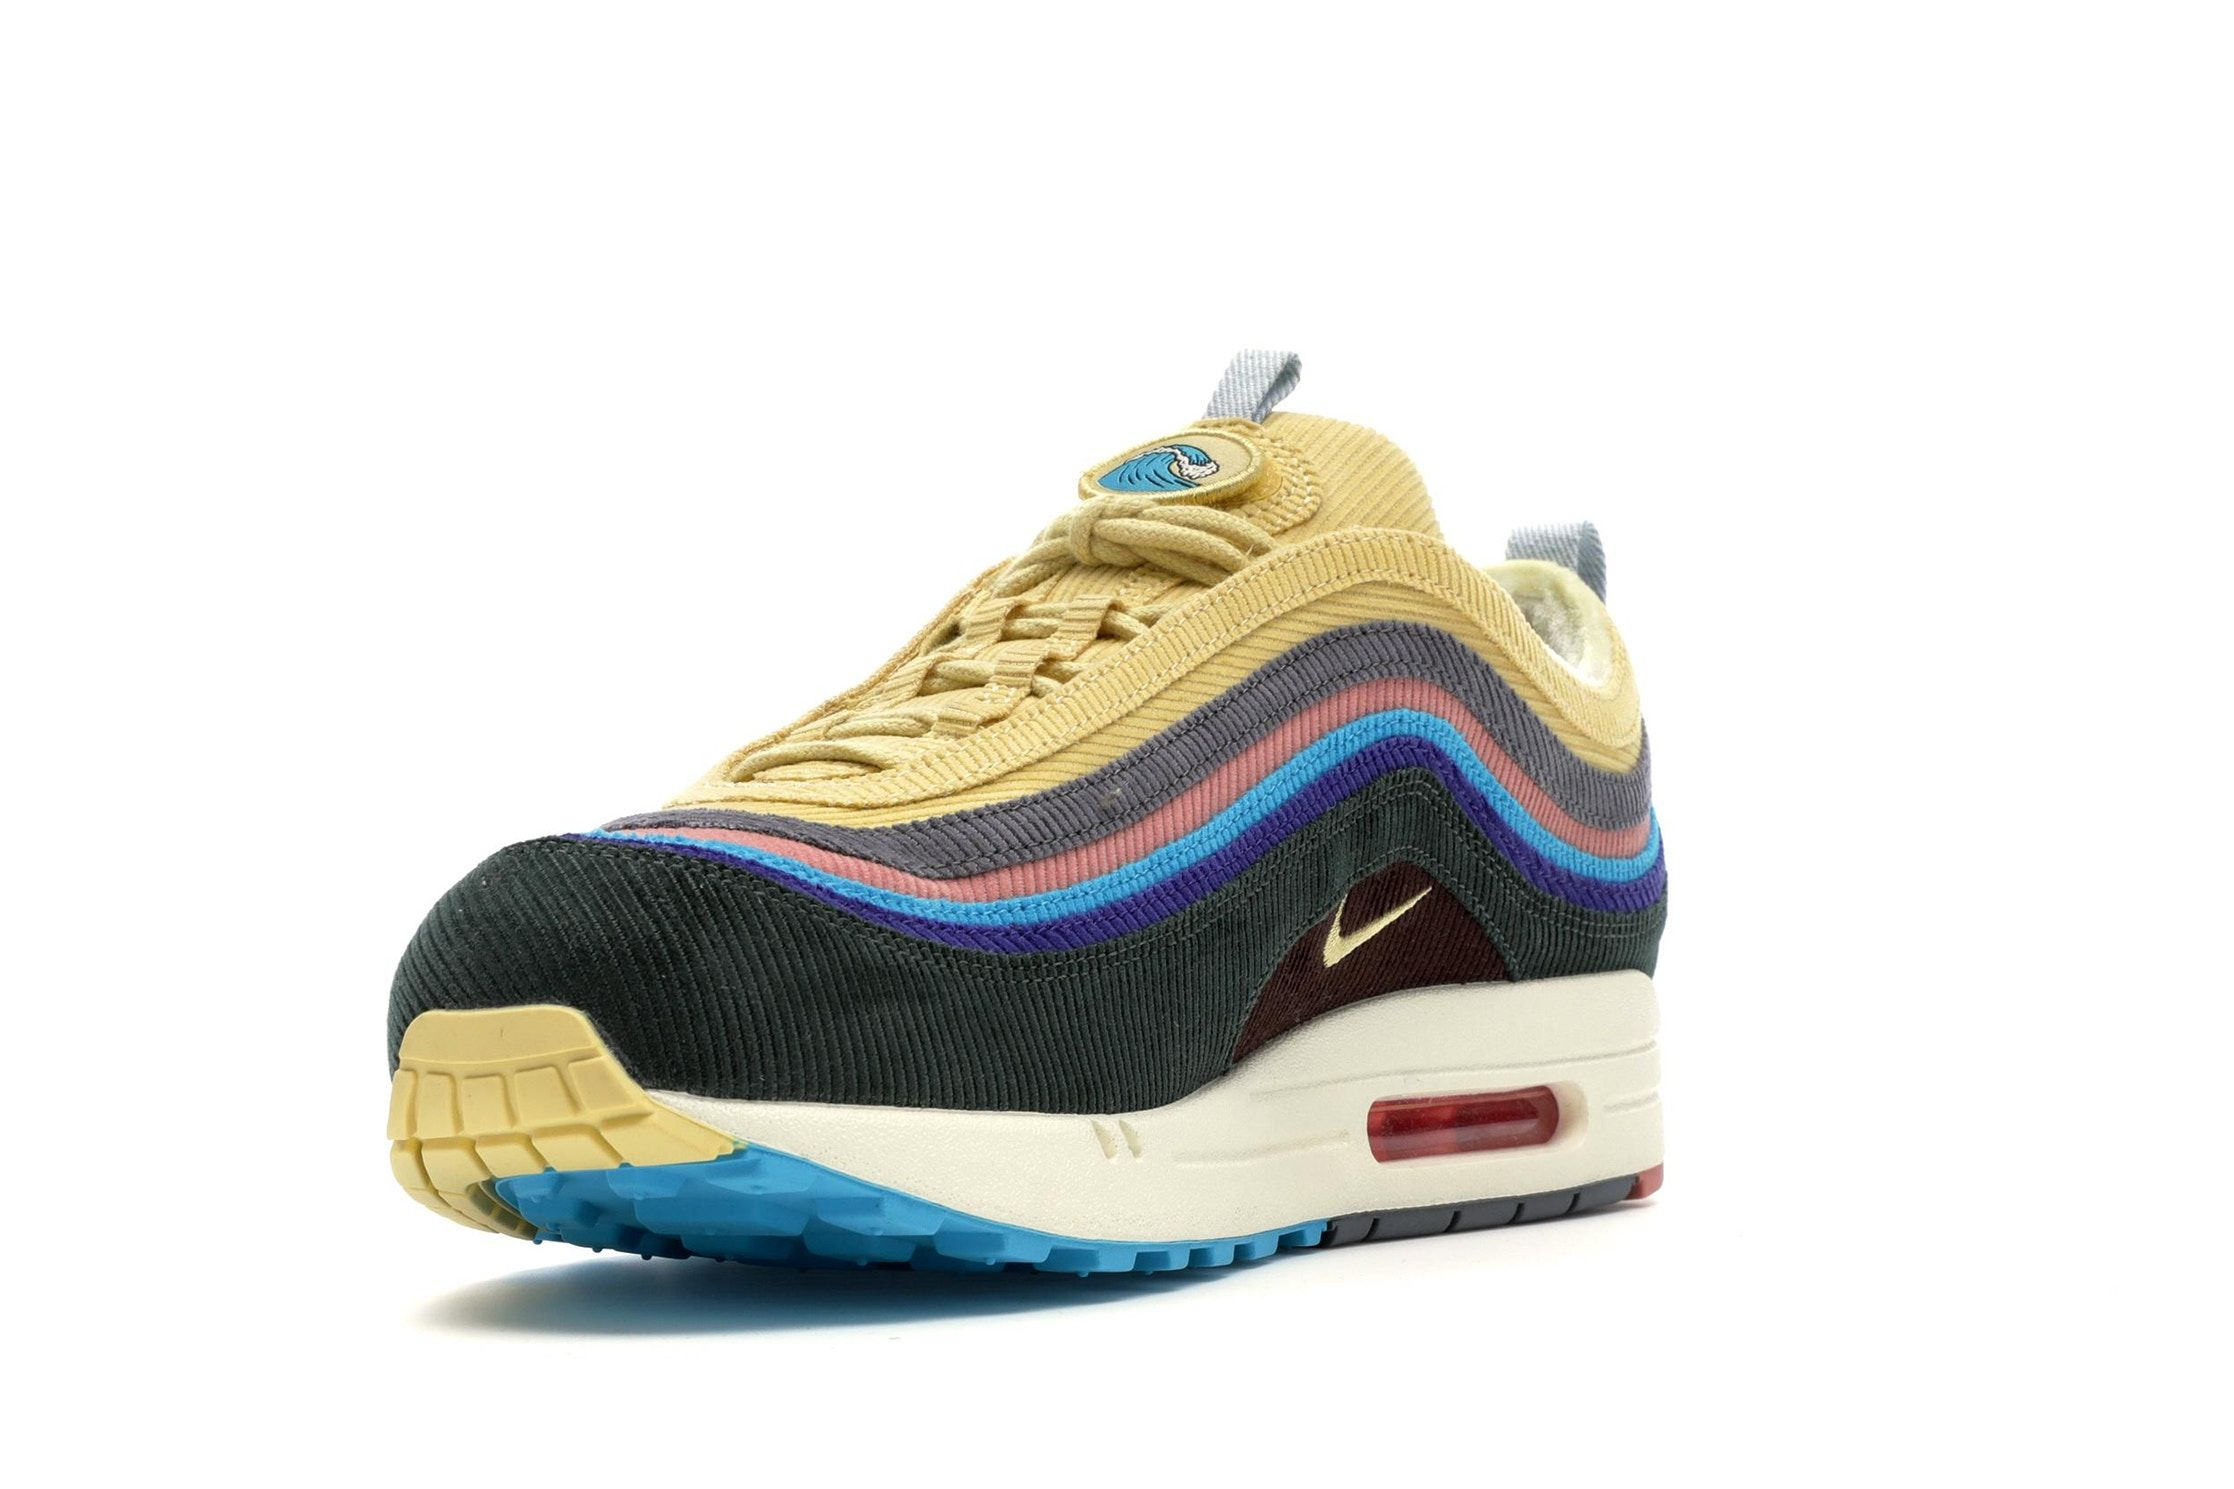 Air Max 1 97 Sean Wotherspoon Extra Lace Set Only Air Max 1